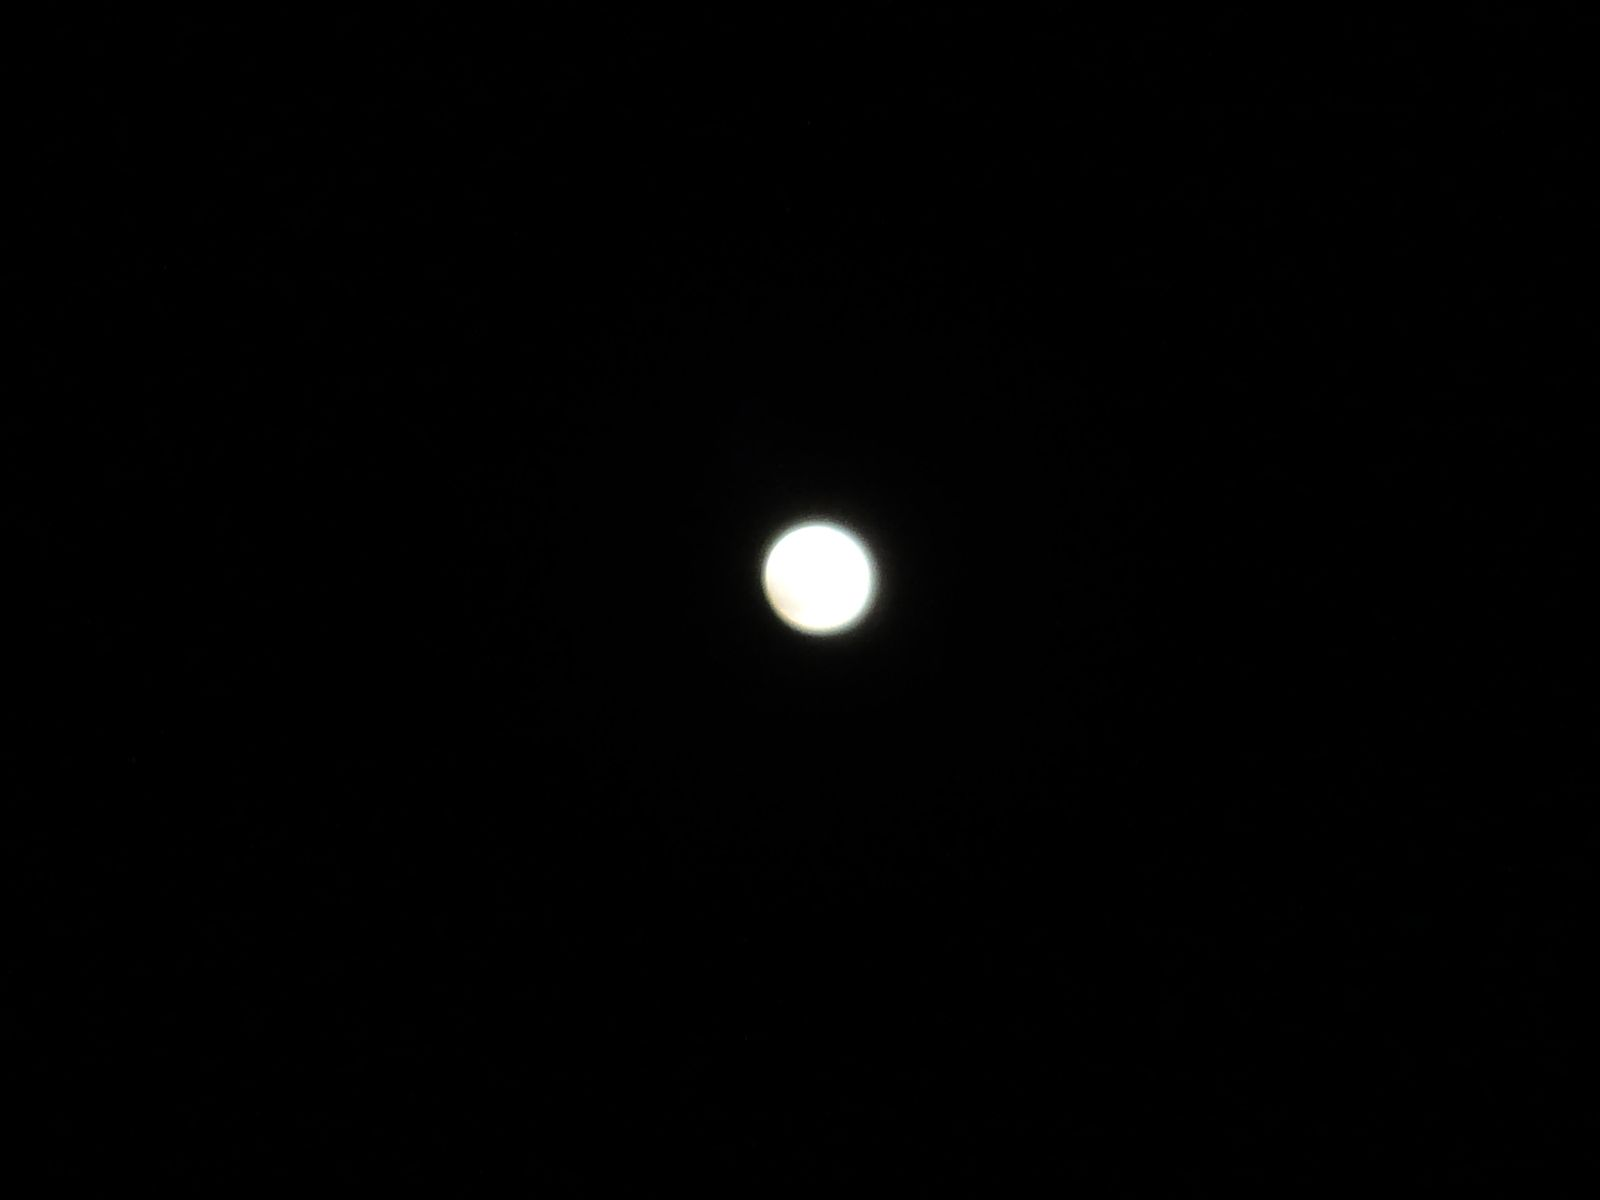 lunar_eclipse_001.jpg